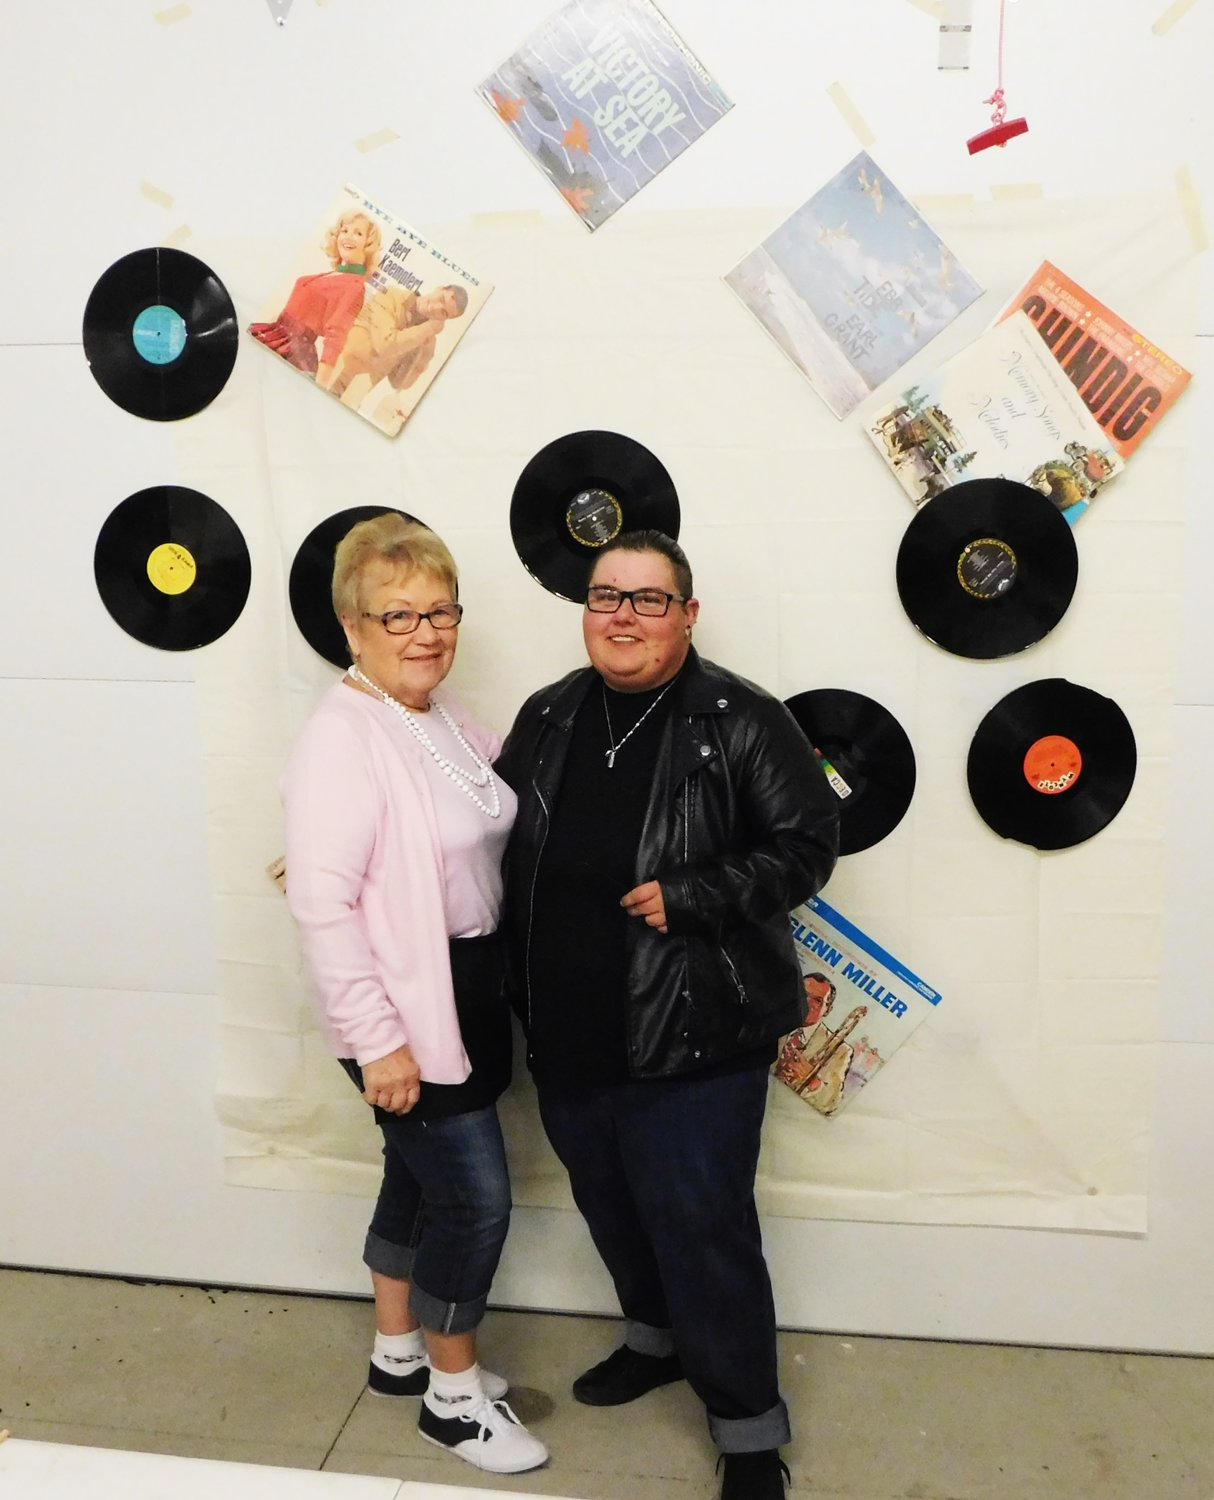 Sock Hop participants had a chance to cut a rug, as well as to get a photo in front of the music-themed backdrop.